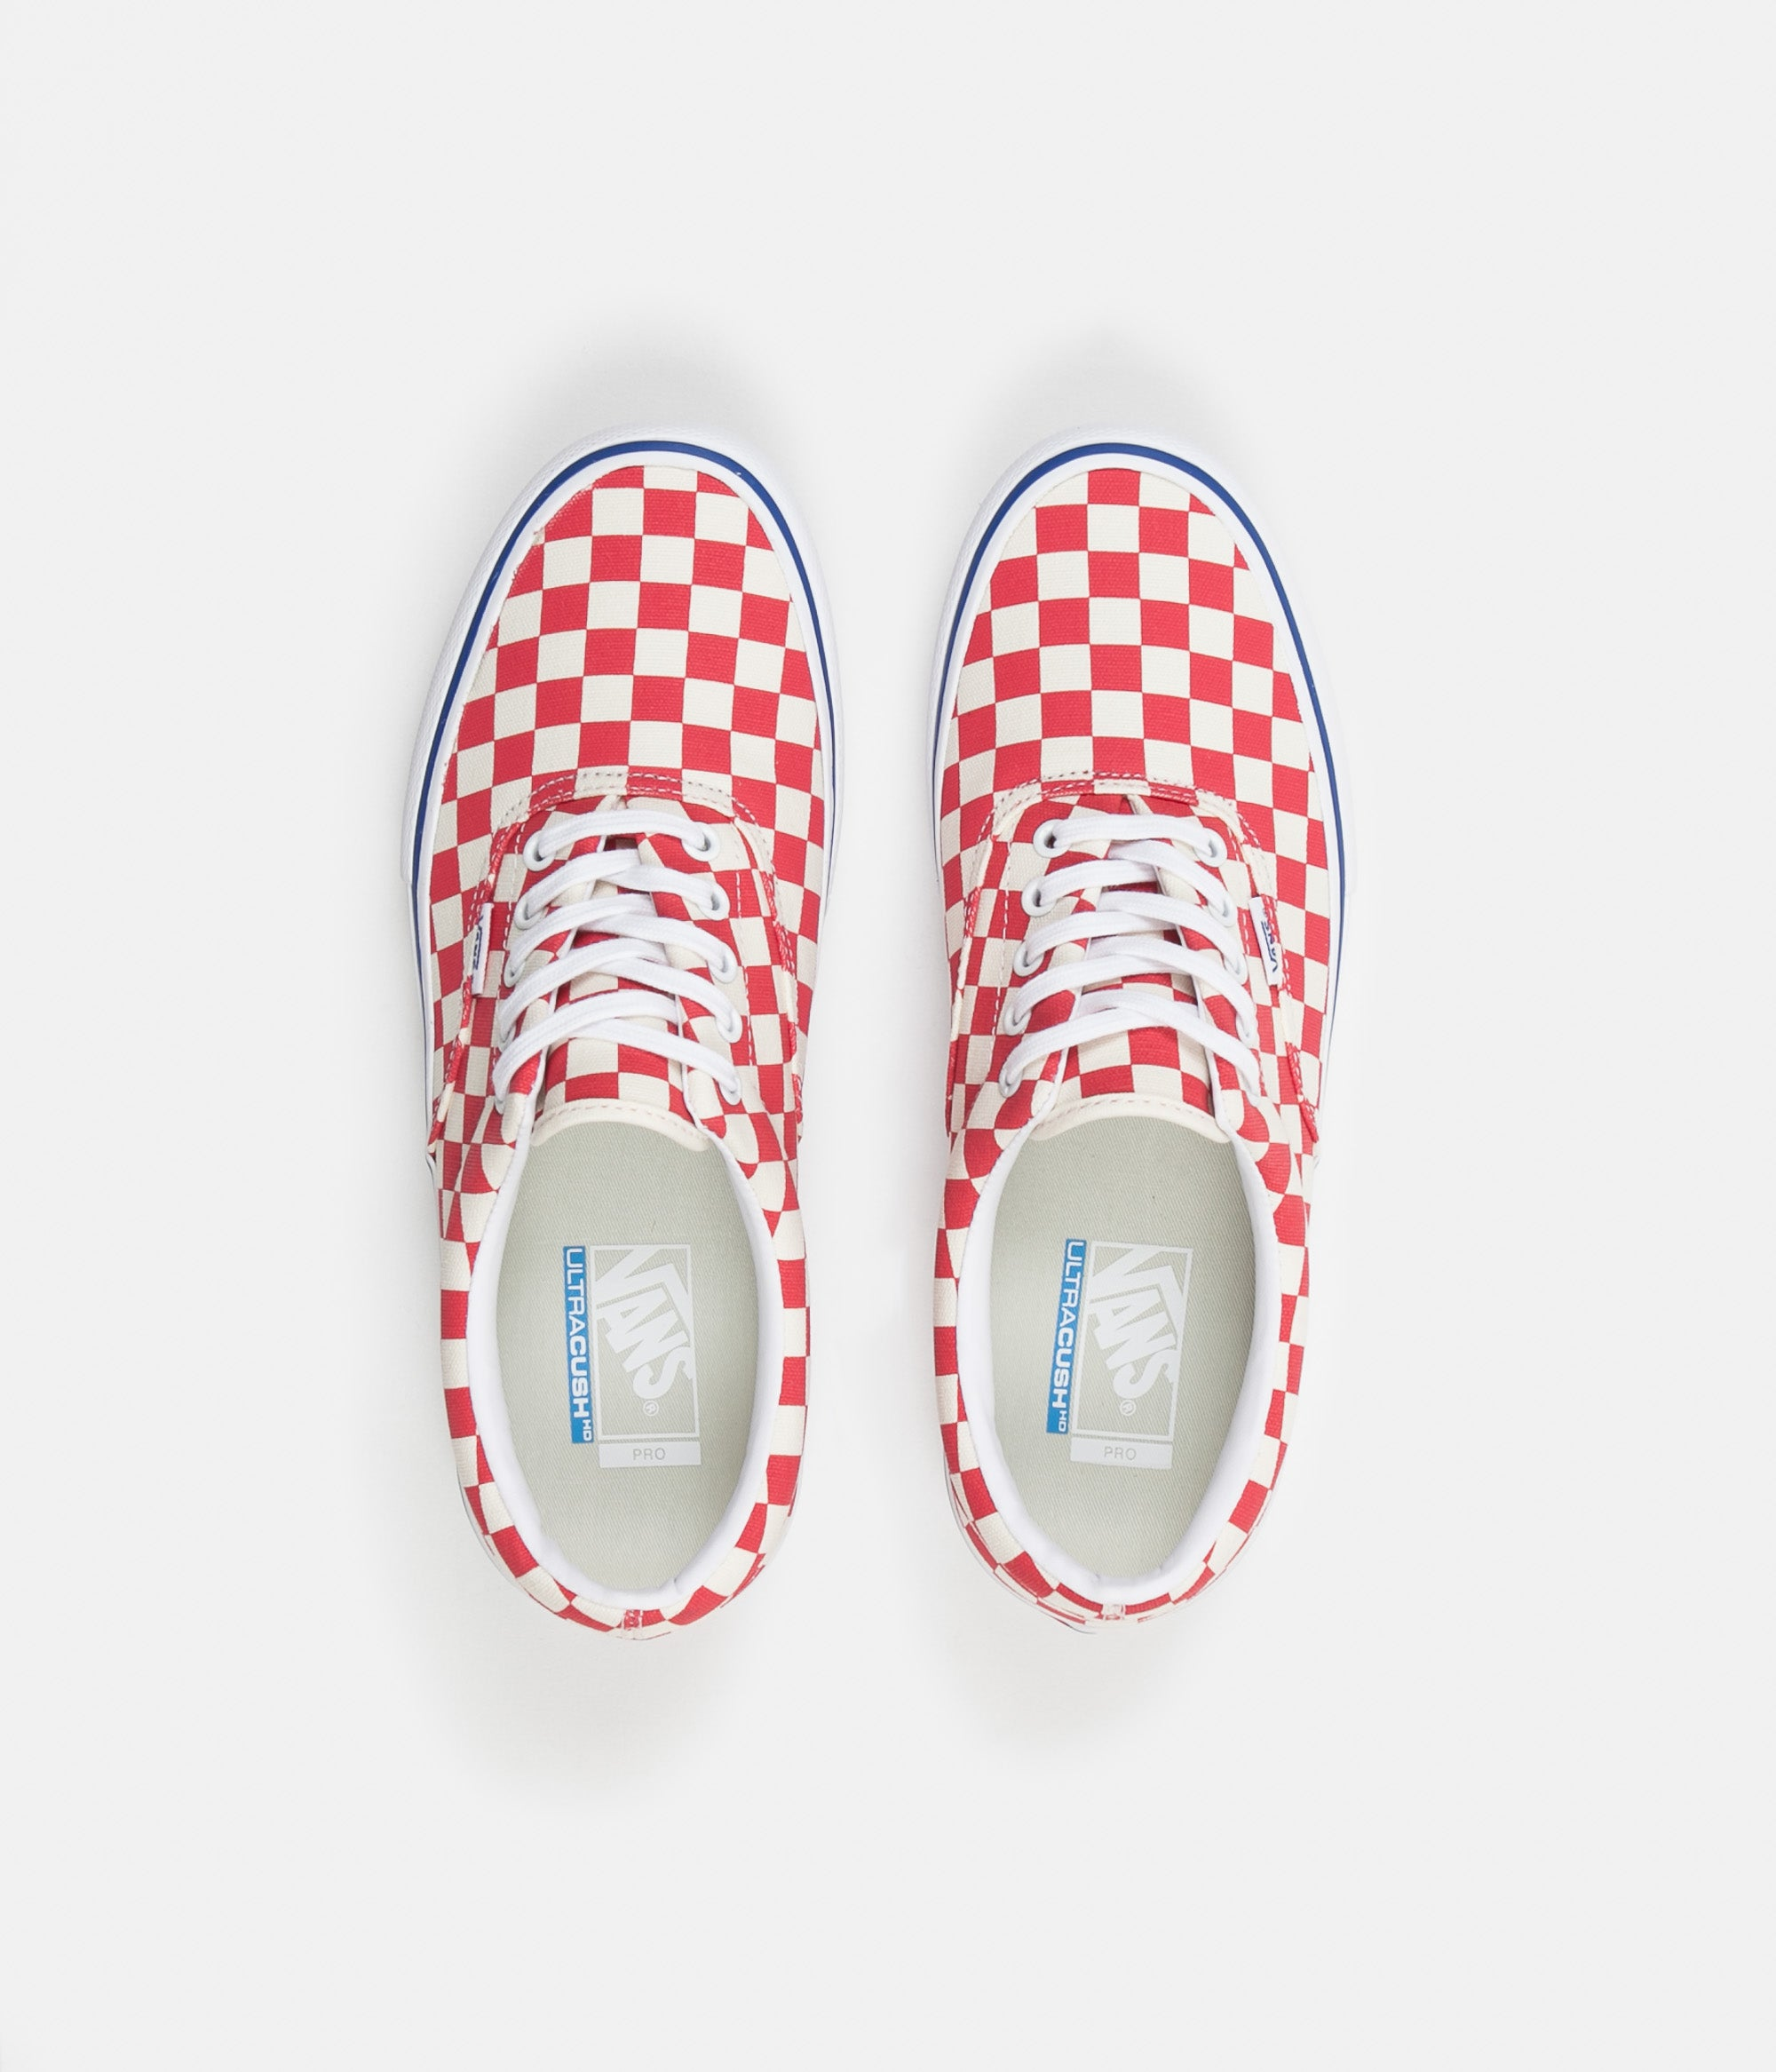 Vans Era Pro Checkerboard Shoes - Rococco Red   Classic White ... 5d8132759